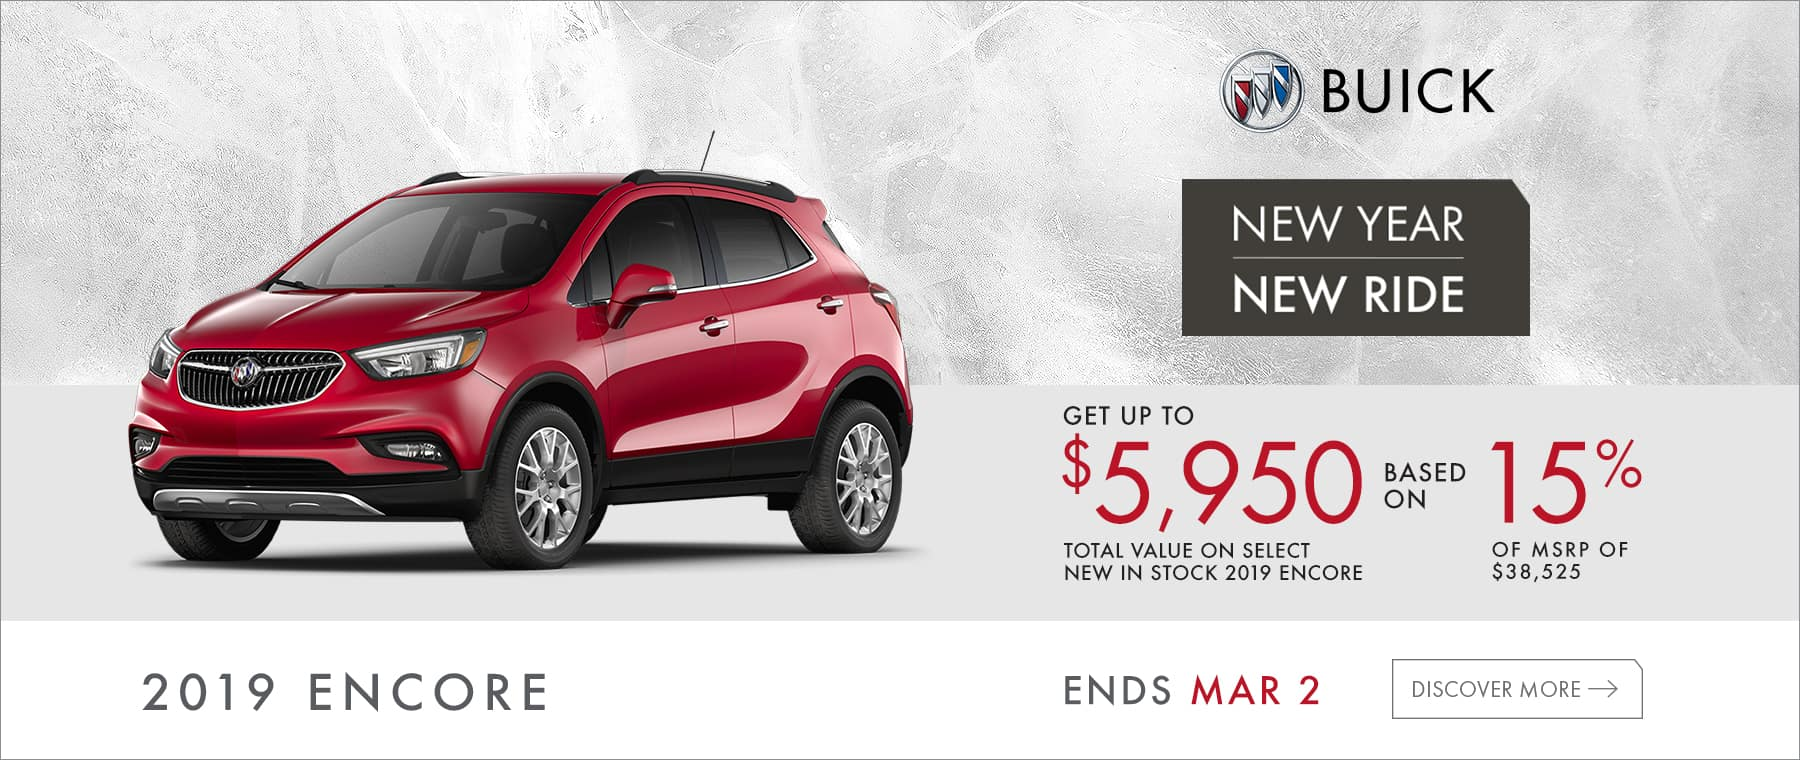 2019 Encore New Year New Ride